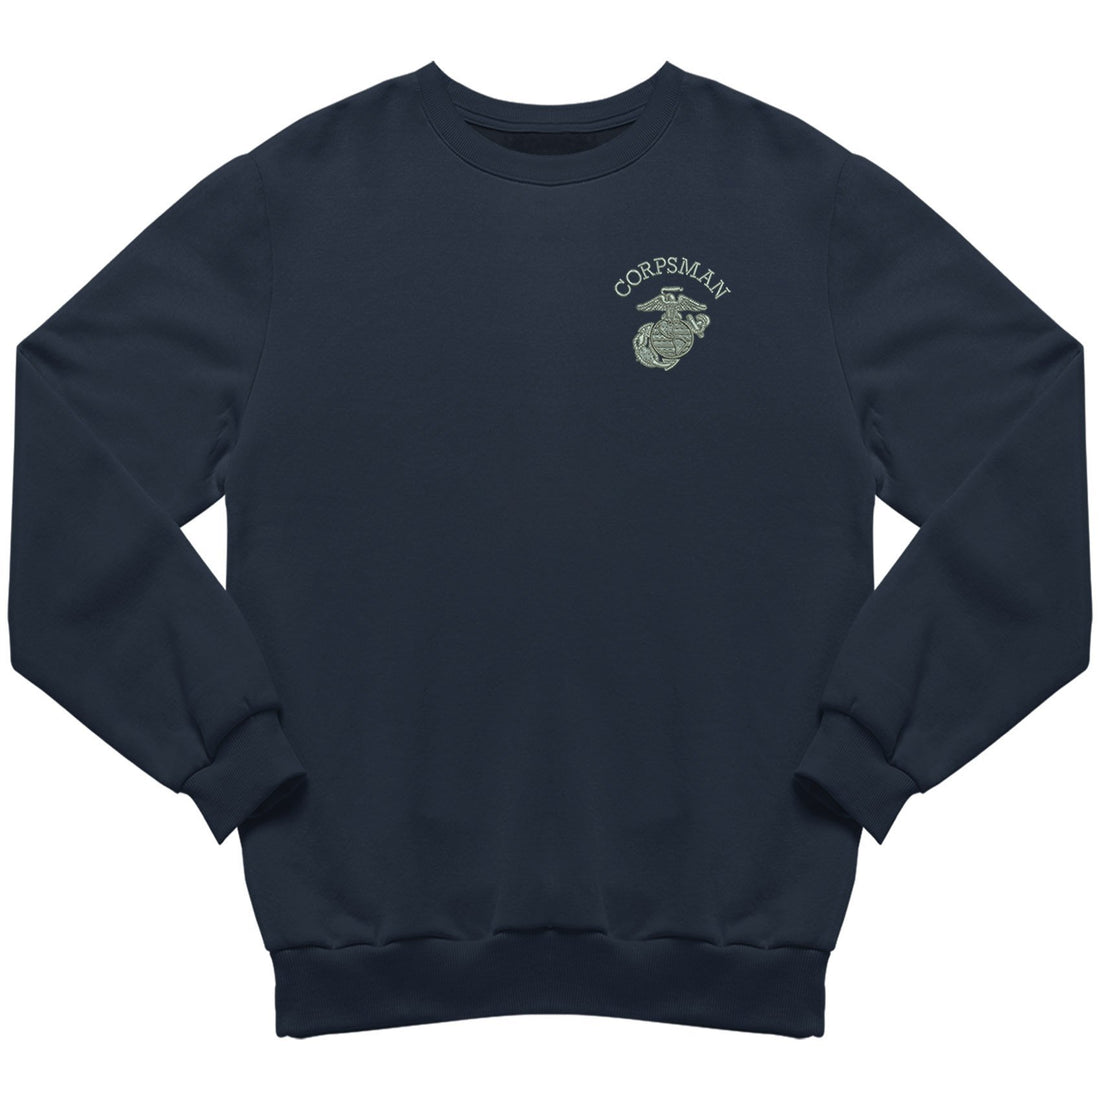 Corpsman EGA Embroidered Sweatshirt - Marine Corps Direct